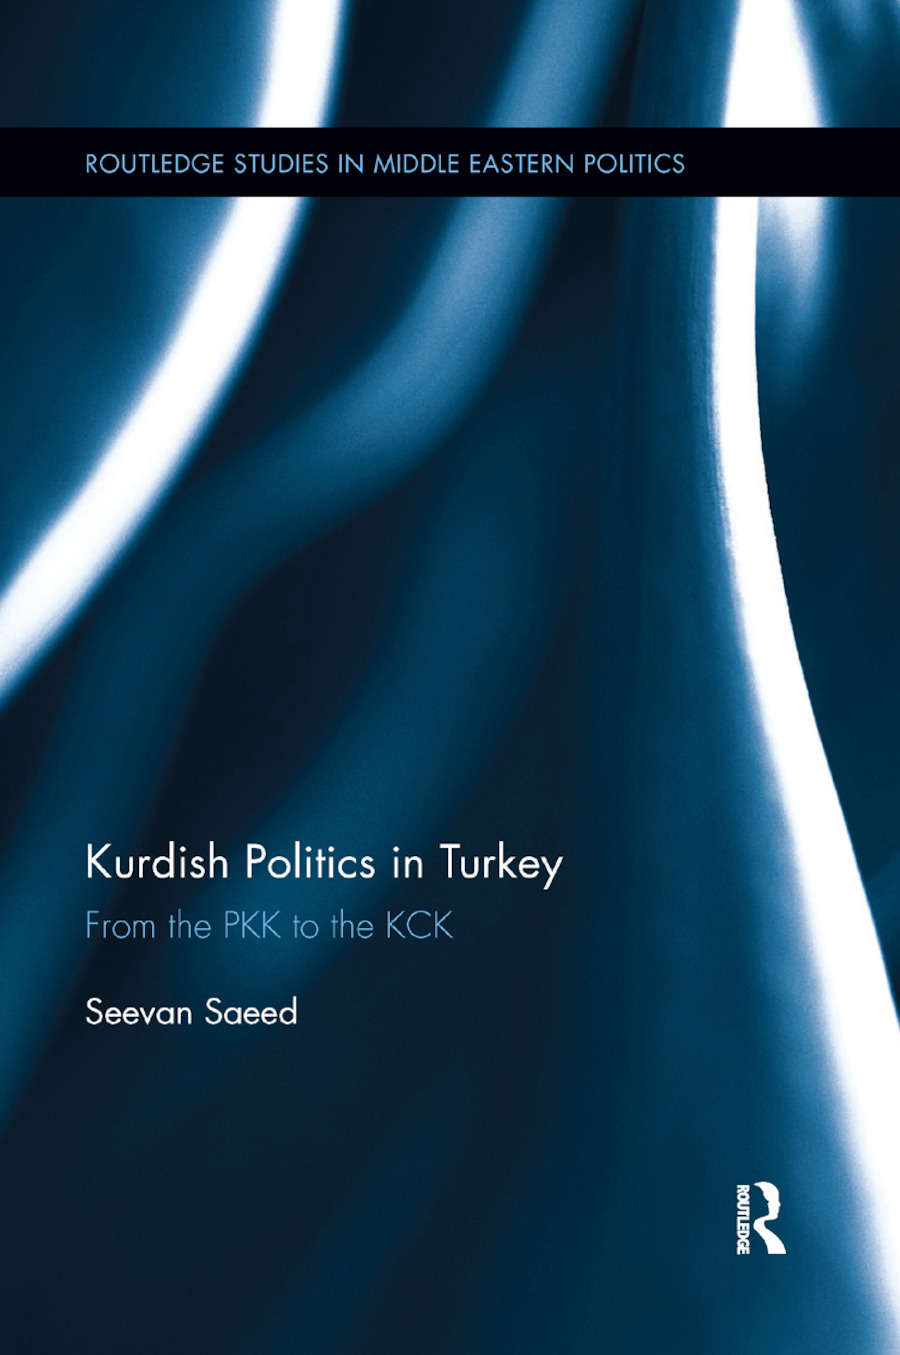 Kurdish Politics in Turkey: From the PKK to the KCK, 1st Edition (Paperback) book cover